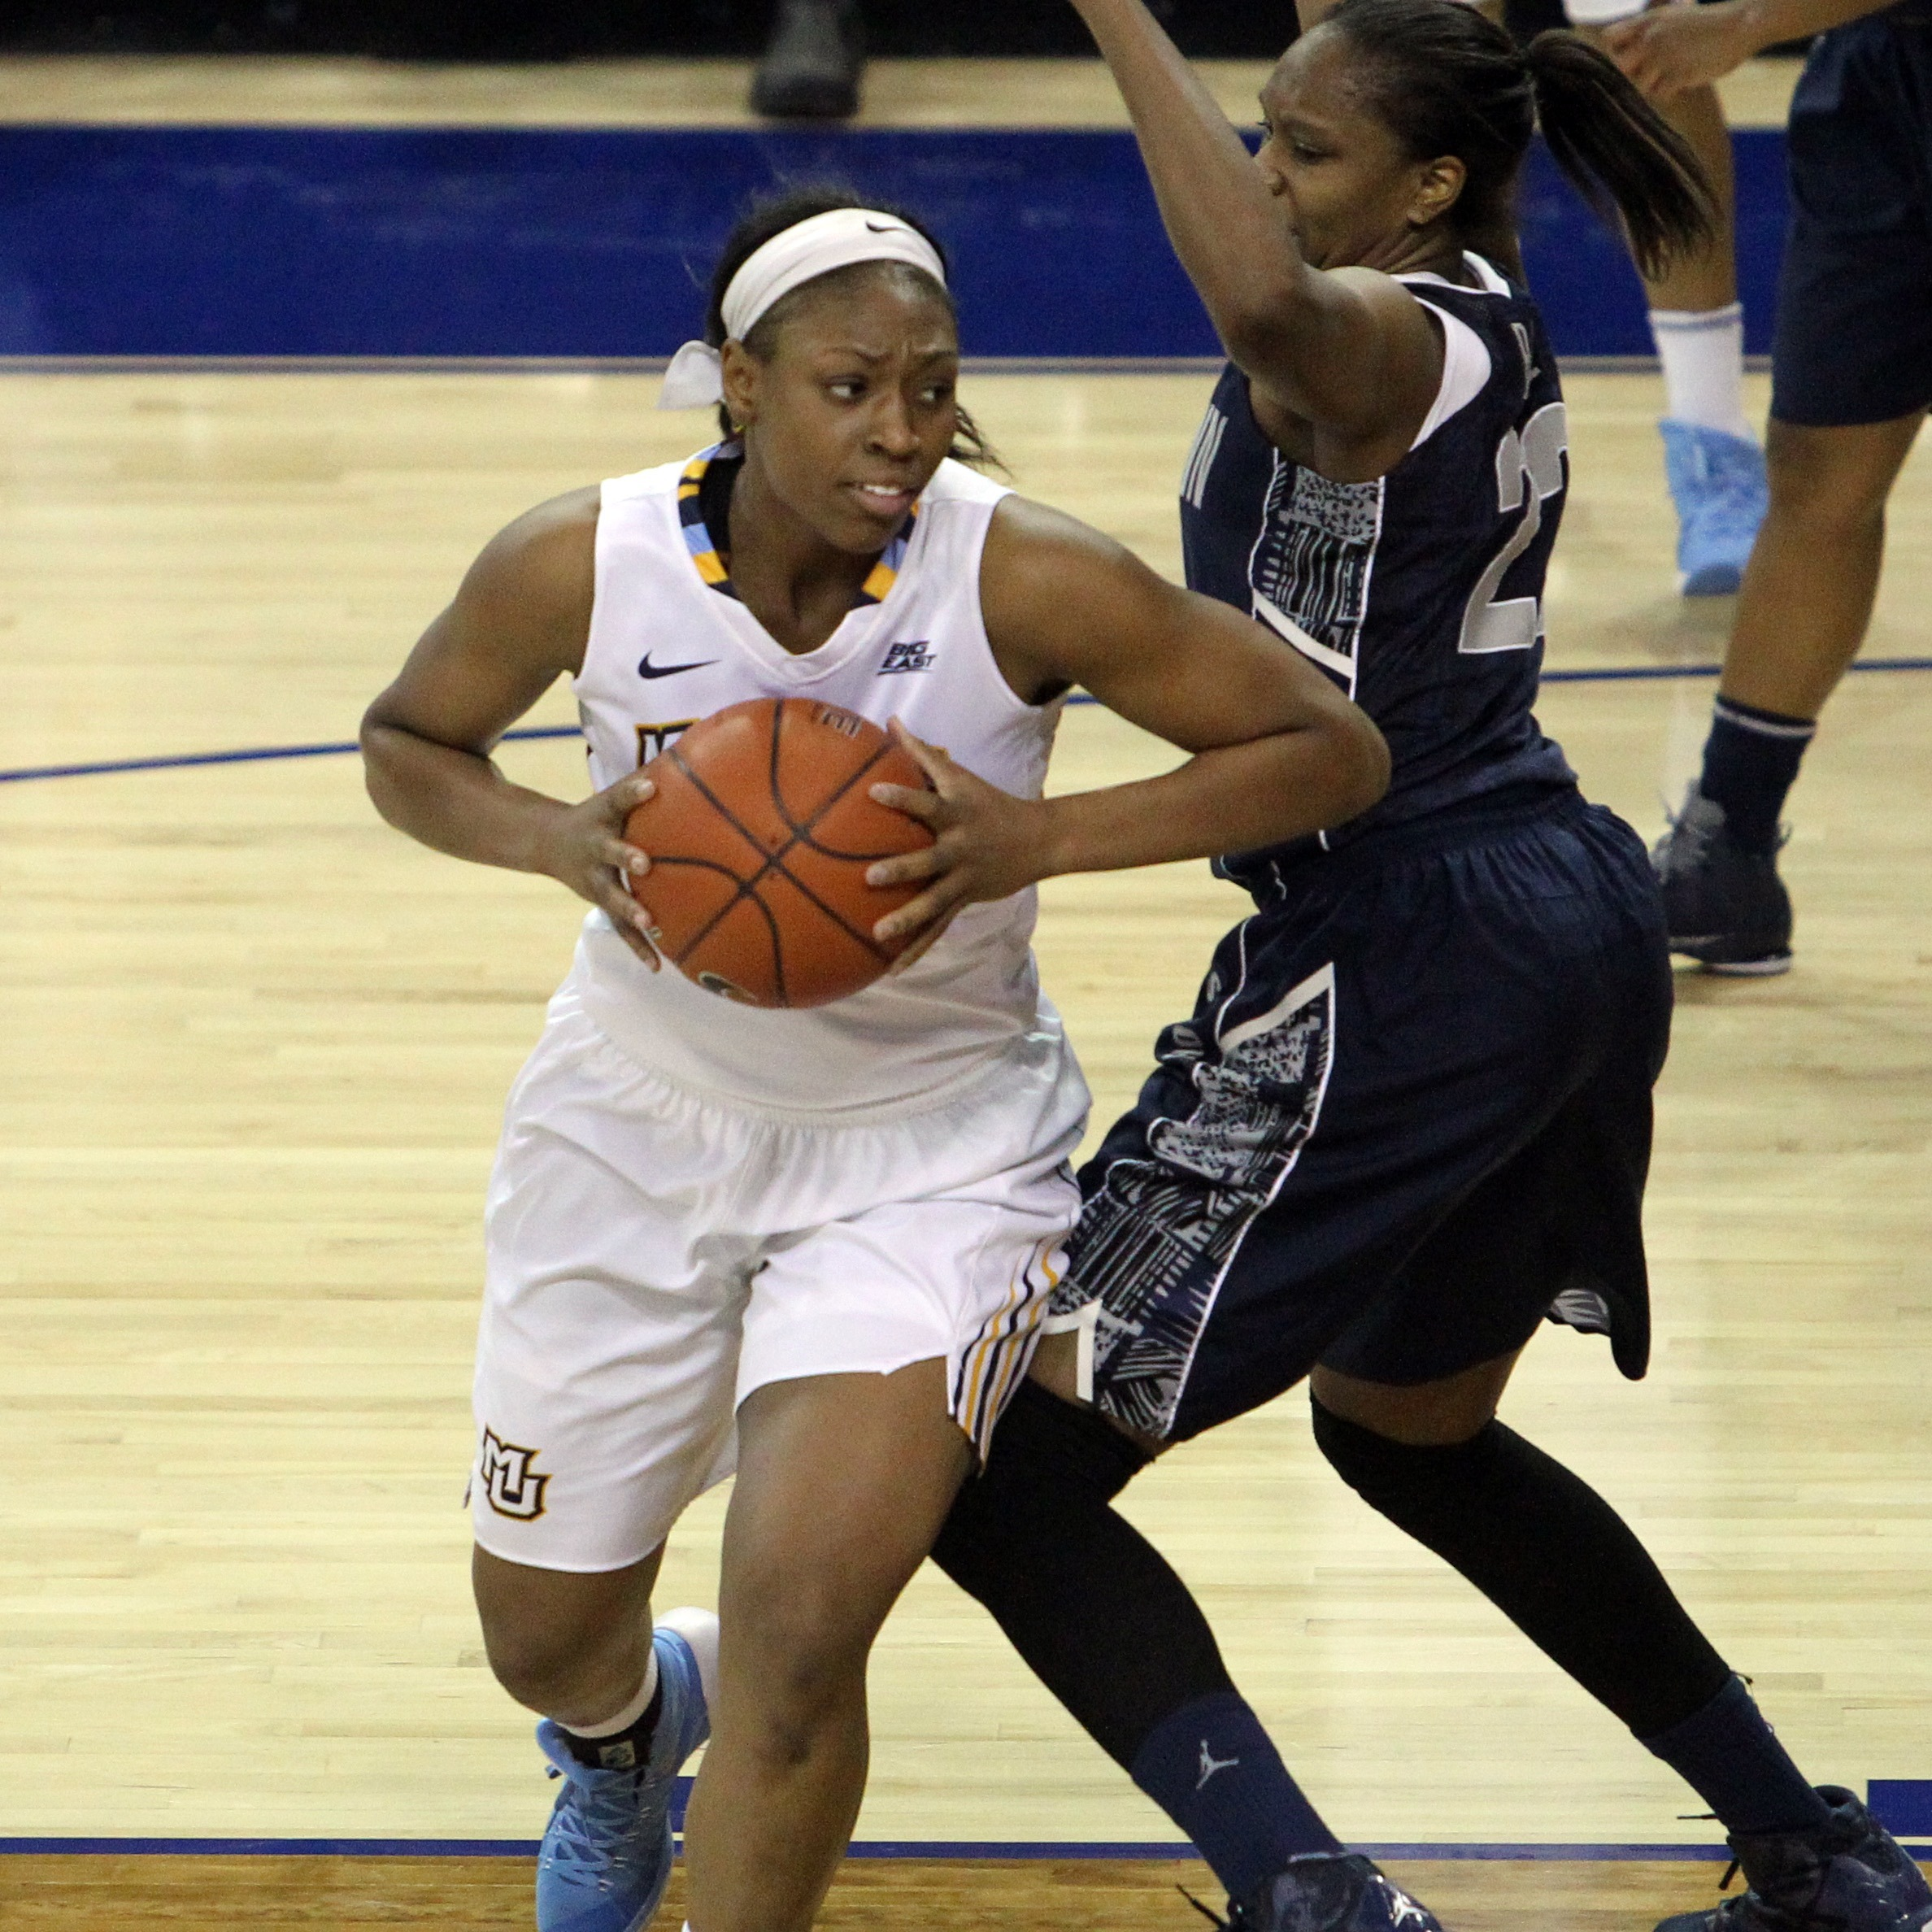 Erika Davenport is pulling down 6.6 rebounds per game